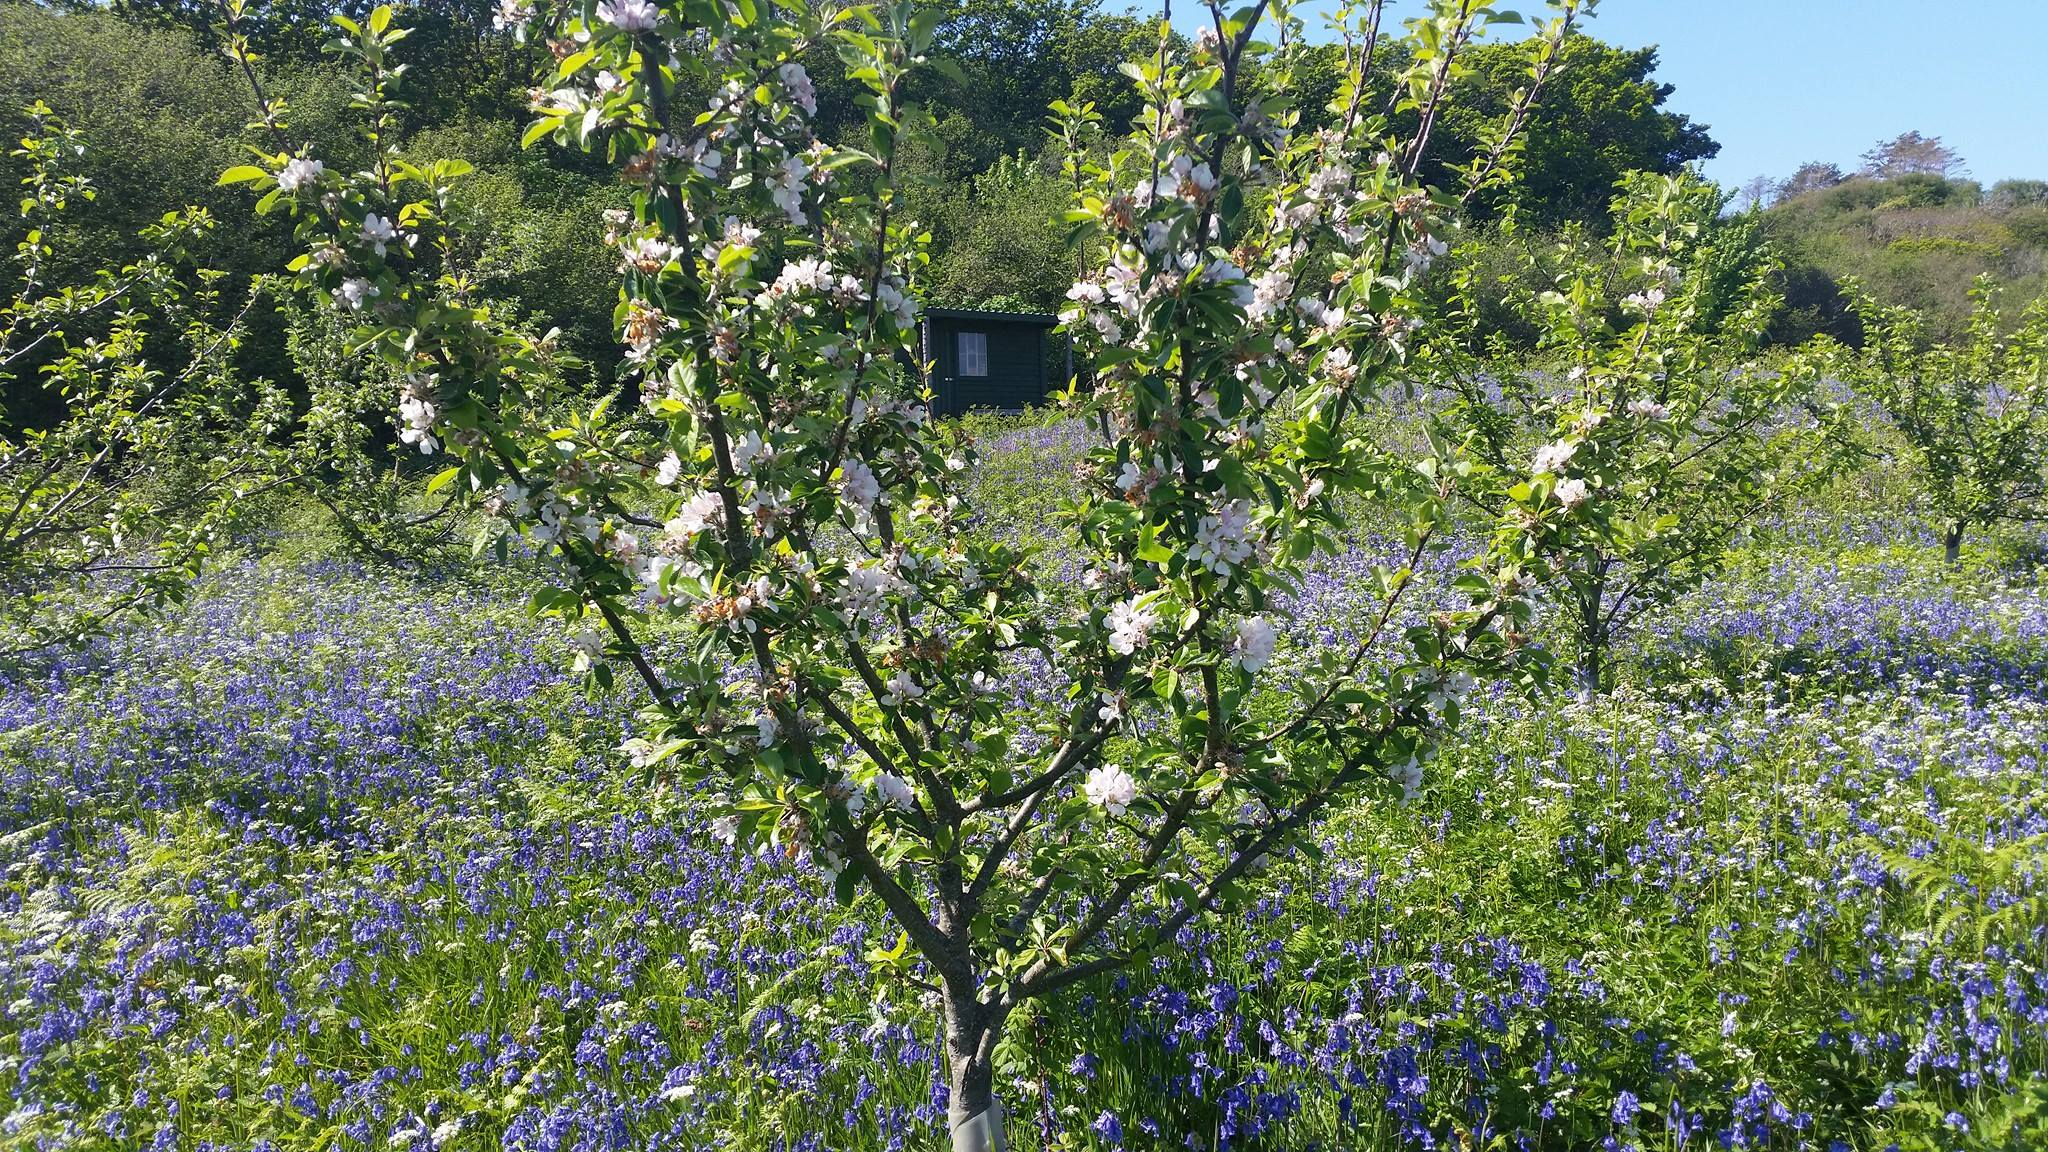 Image of a flowering apple tree with bluebells flowering underneath